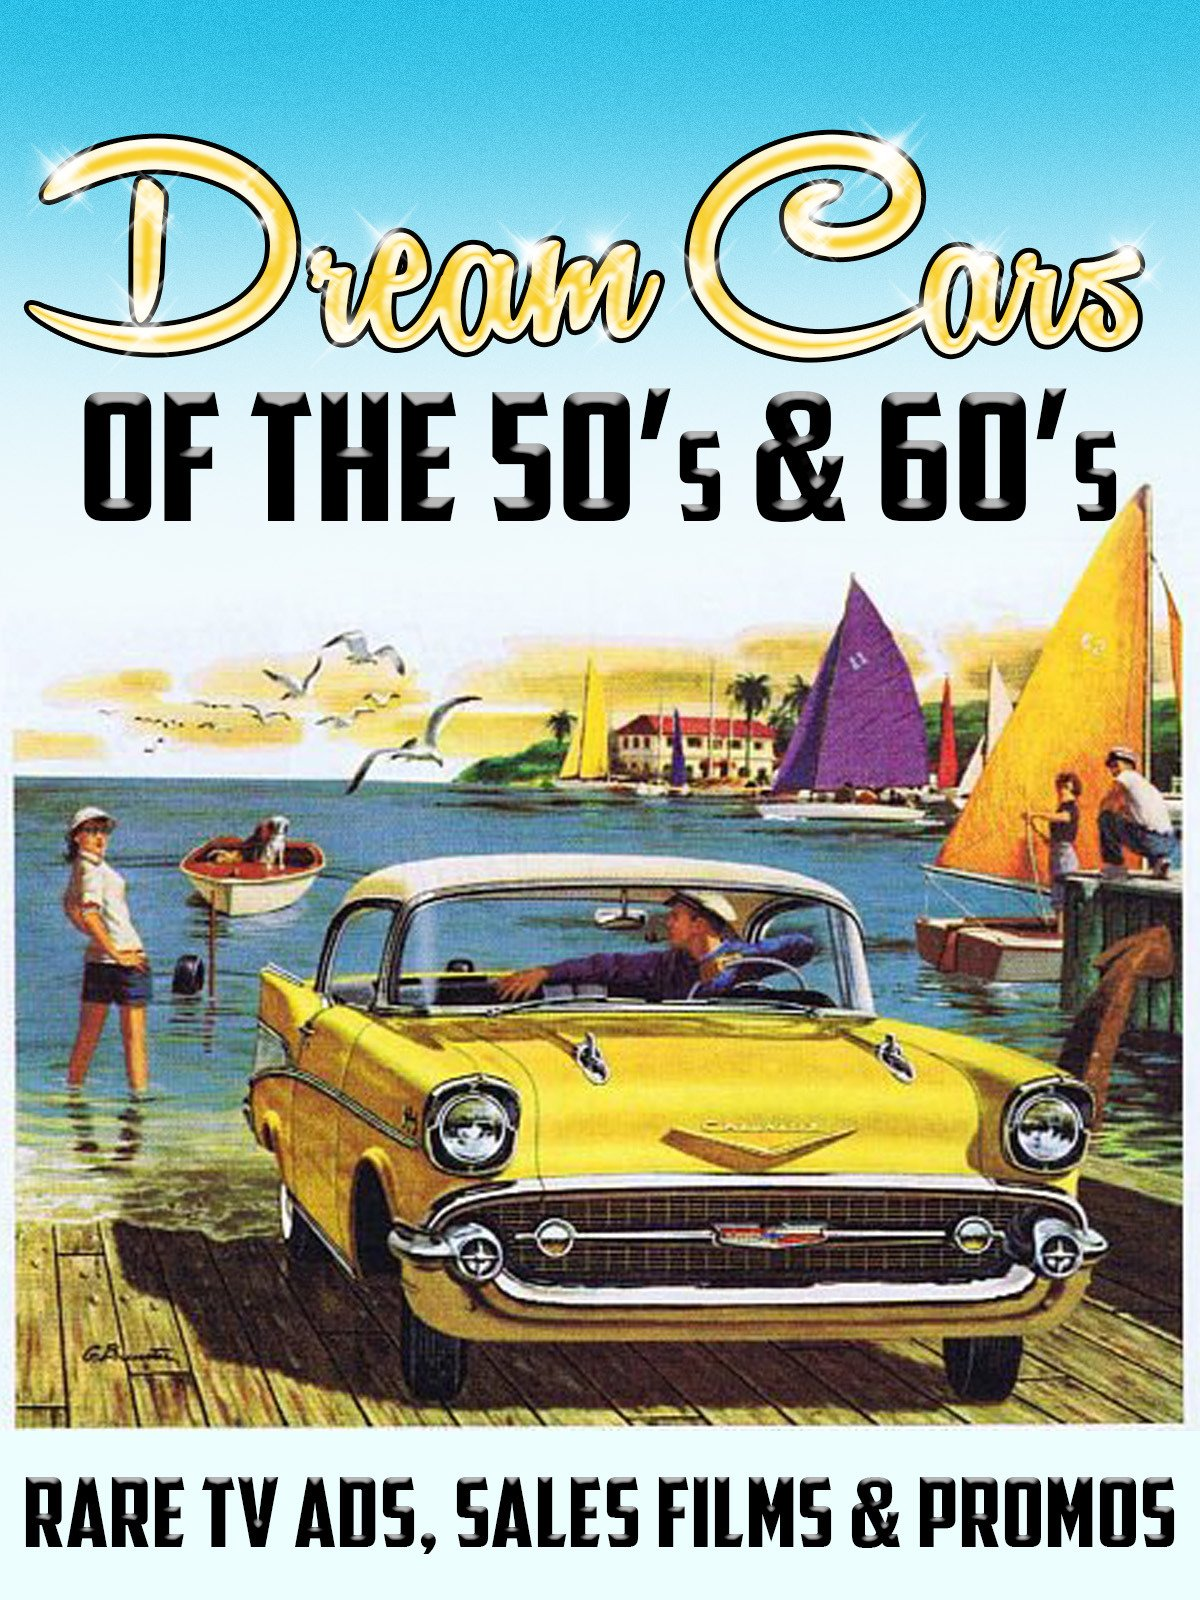 Dream Cars of the 50's & 60's... Rare TV Ads, Sales Films & Promos